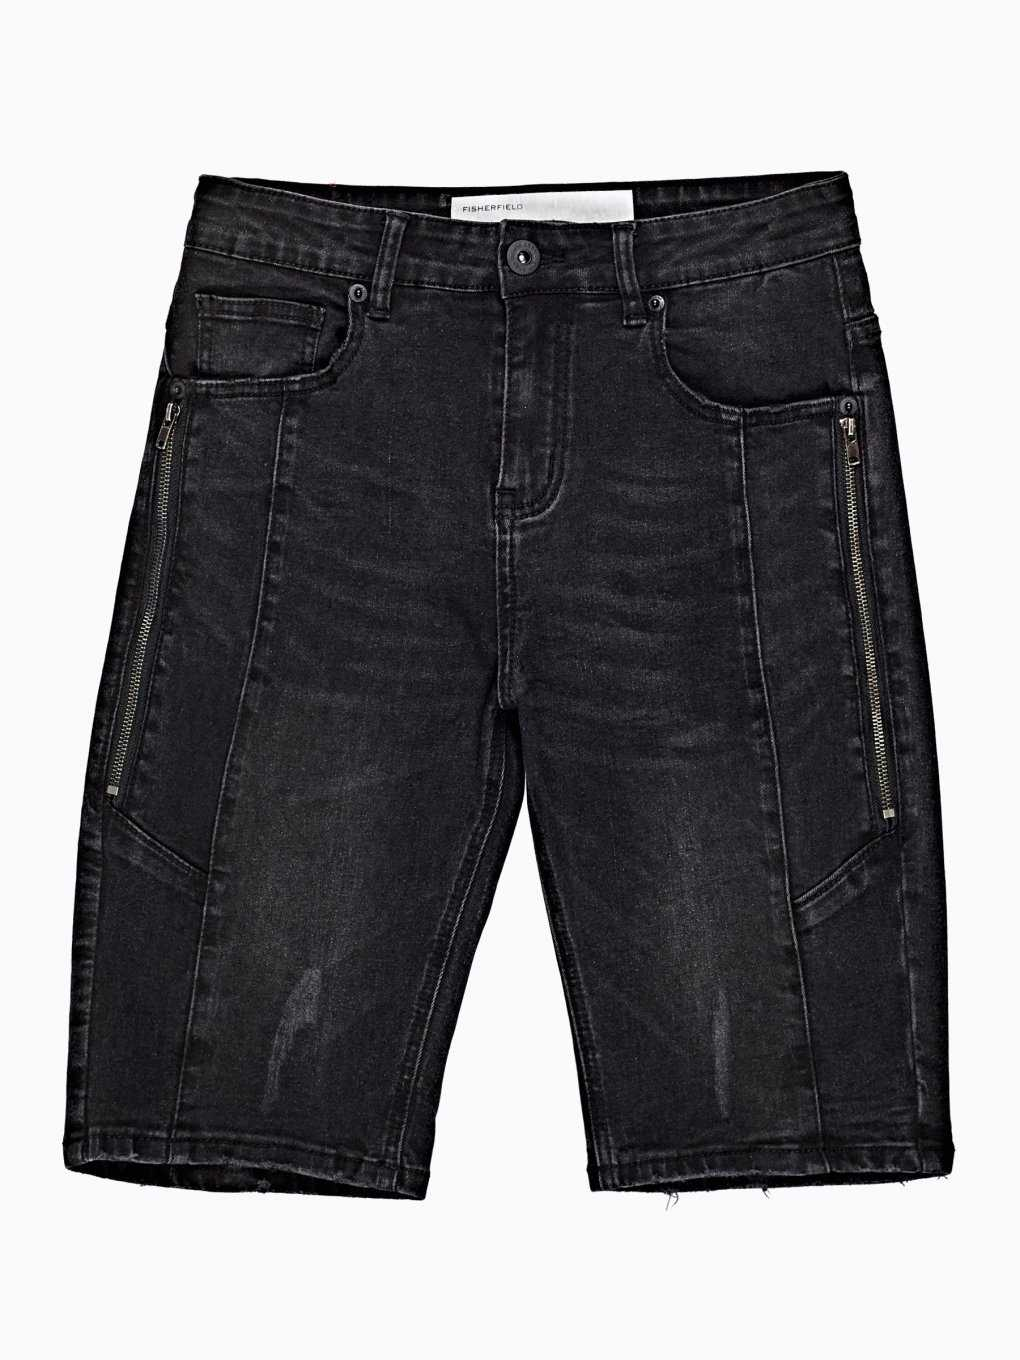 DENIM SLIM FIT SHORTS WITH ZIPPERS